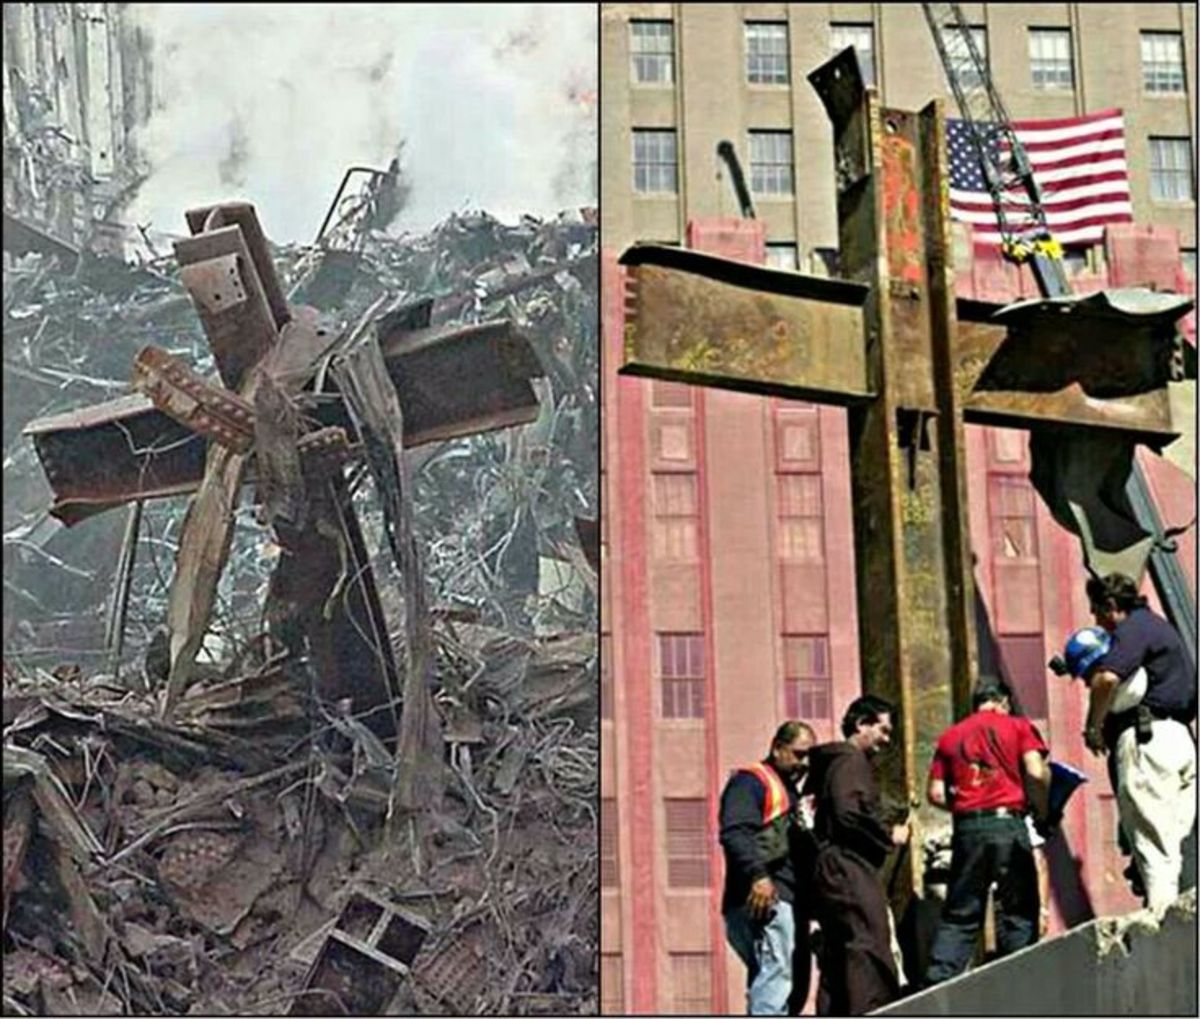 We Must Never Forget That Horrific Day, 9-11-2001